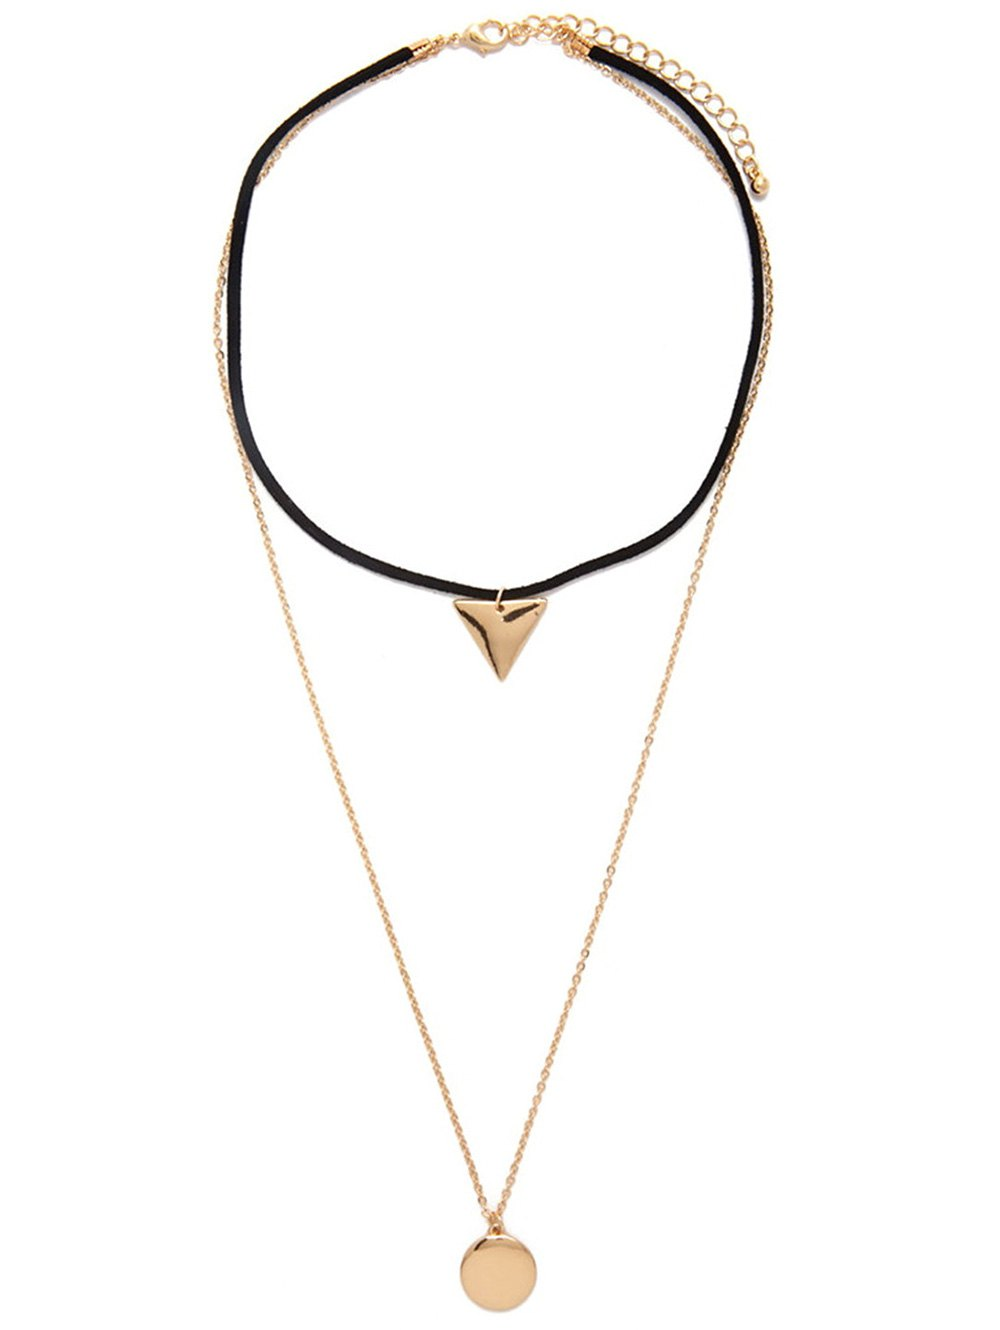 Multilayered Geometric Charm Choker Necklace